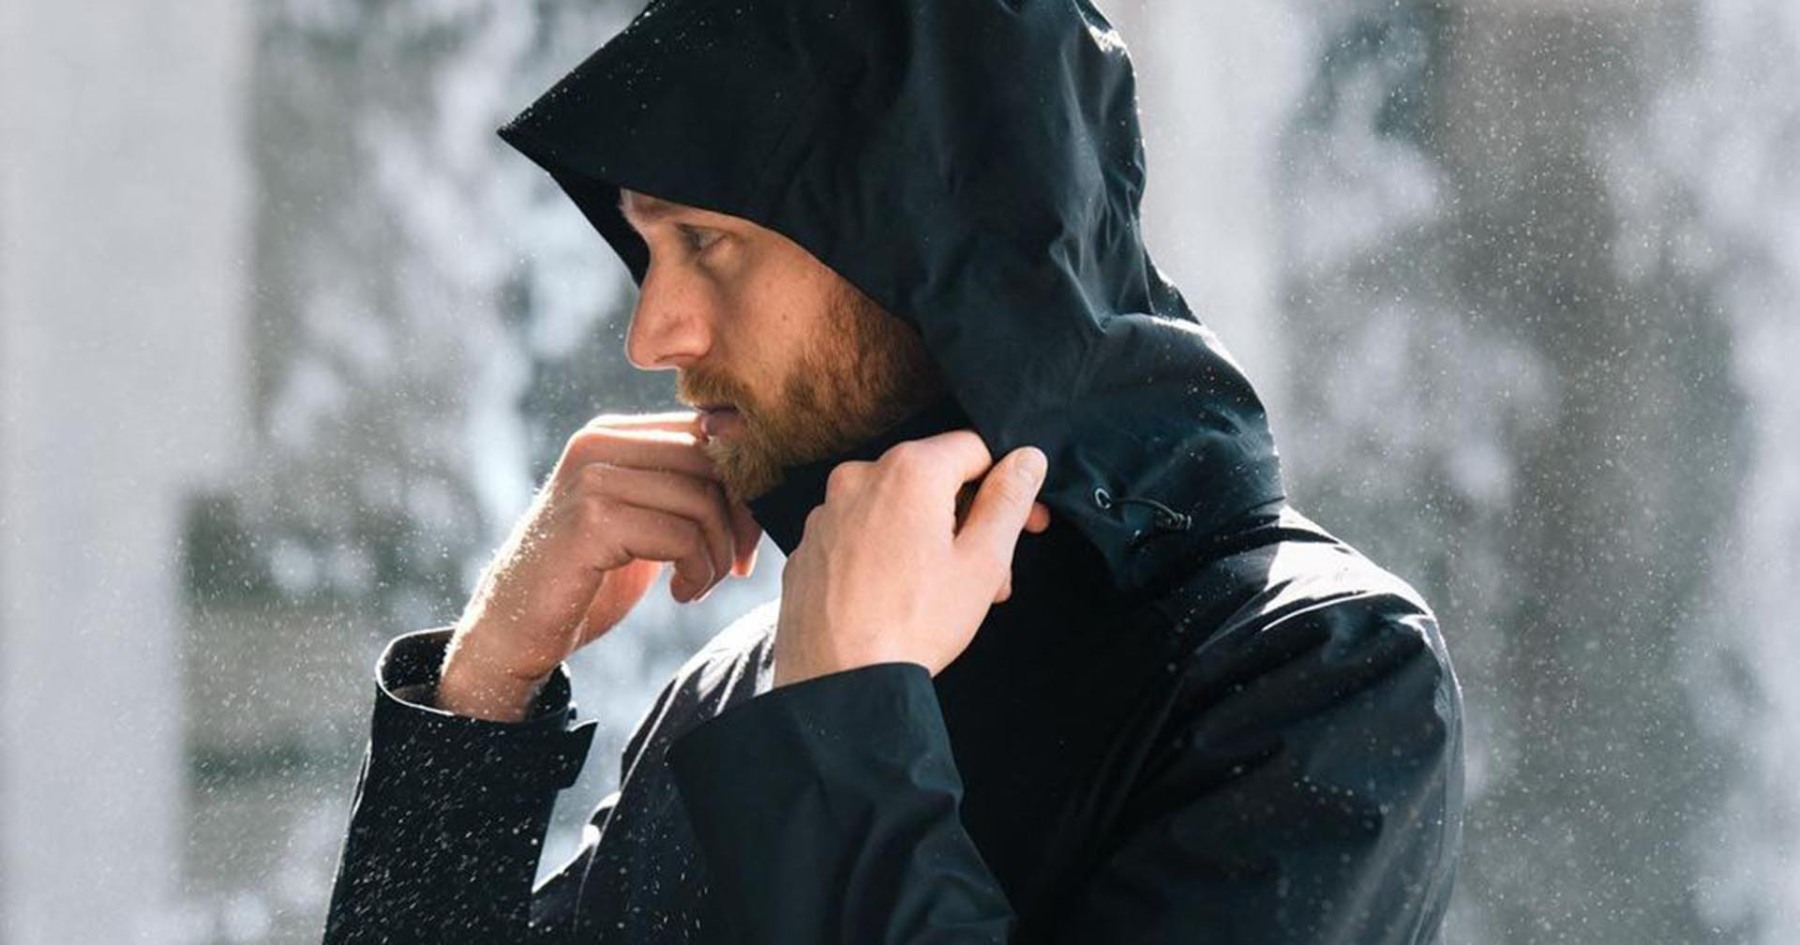 11 Waterproof Jackets to Help You Weather the Rain in Style